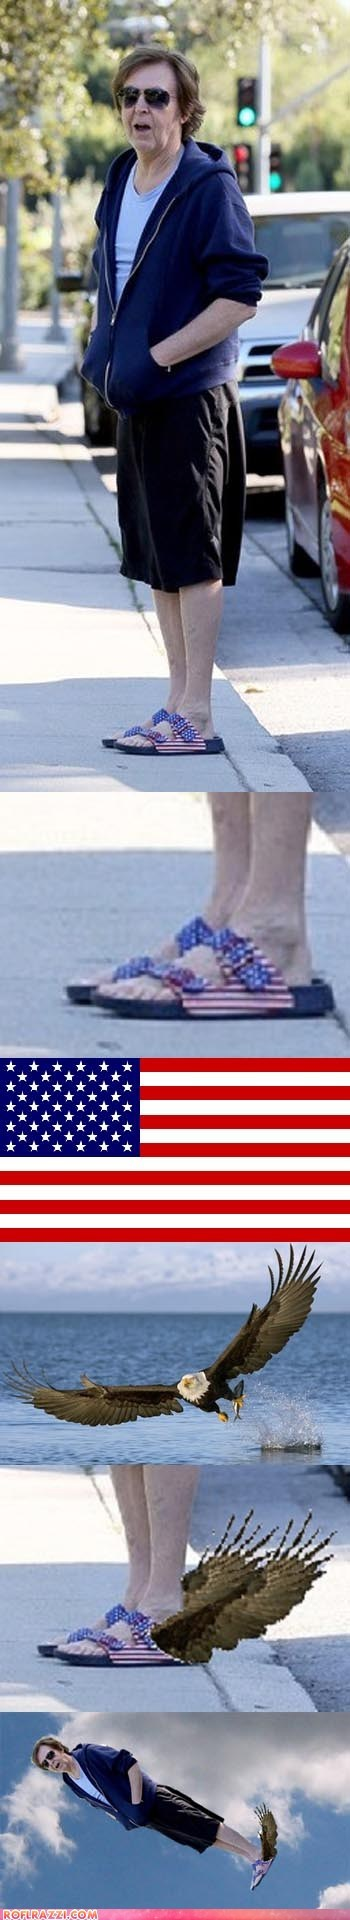 Freedom Sandals Are so F**king Free